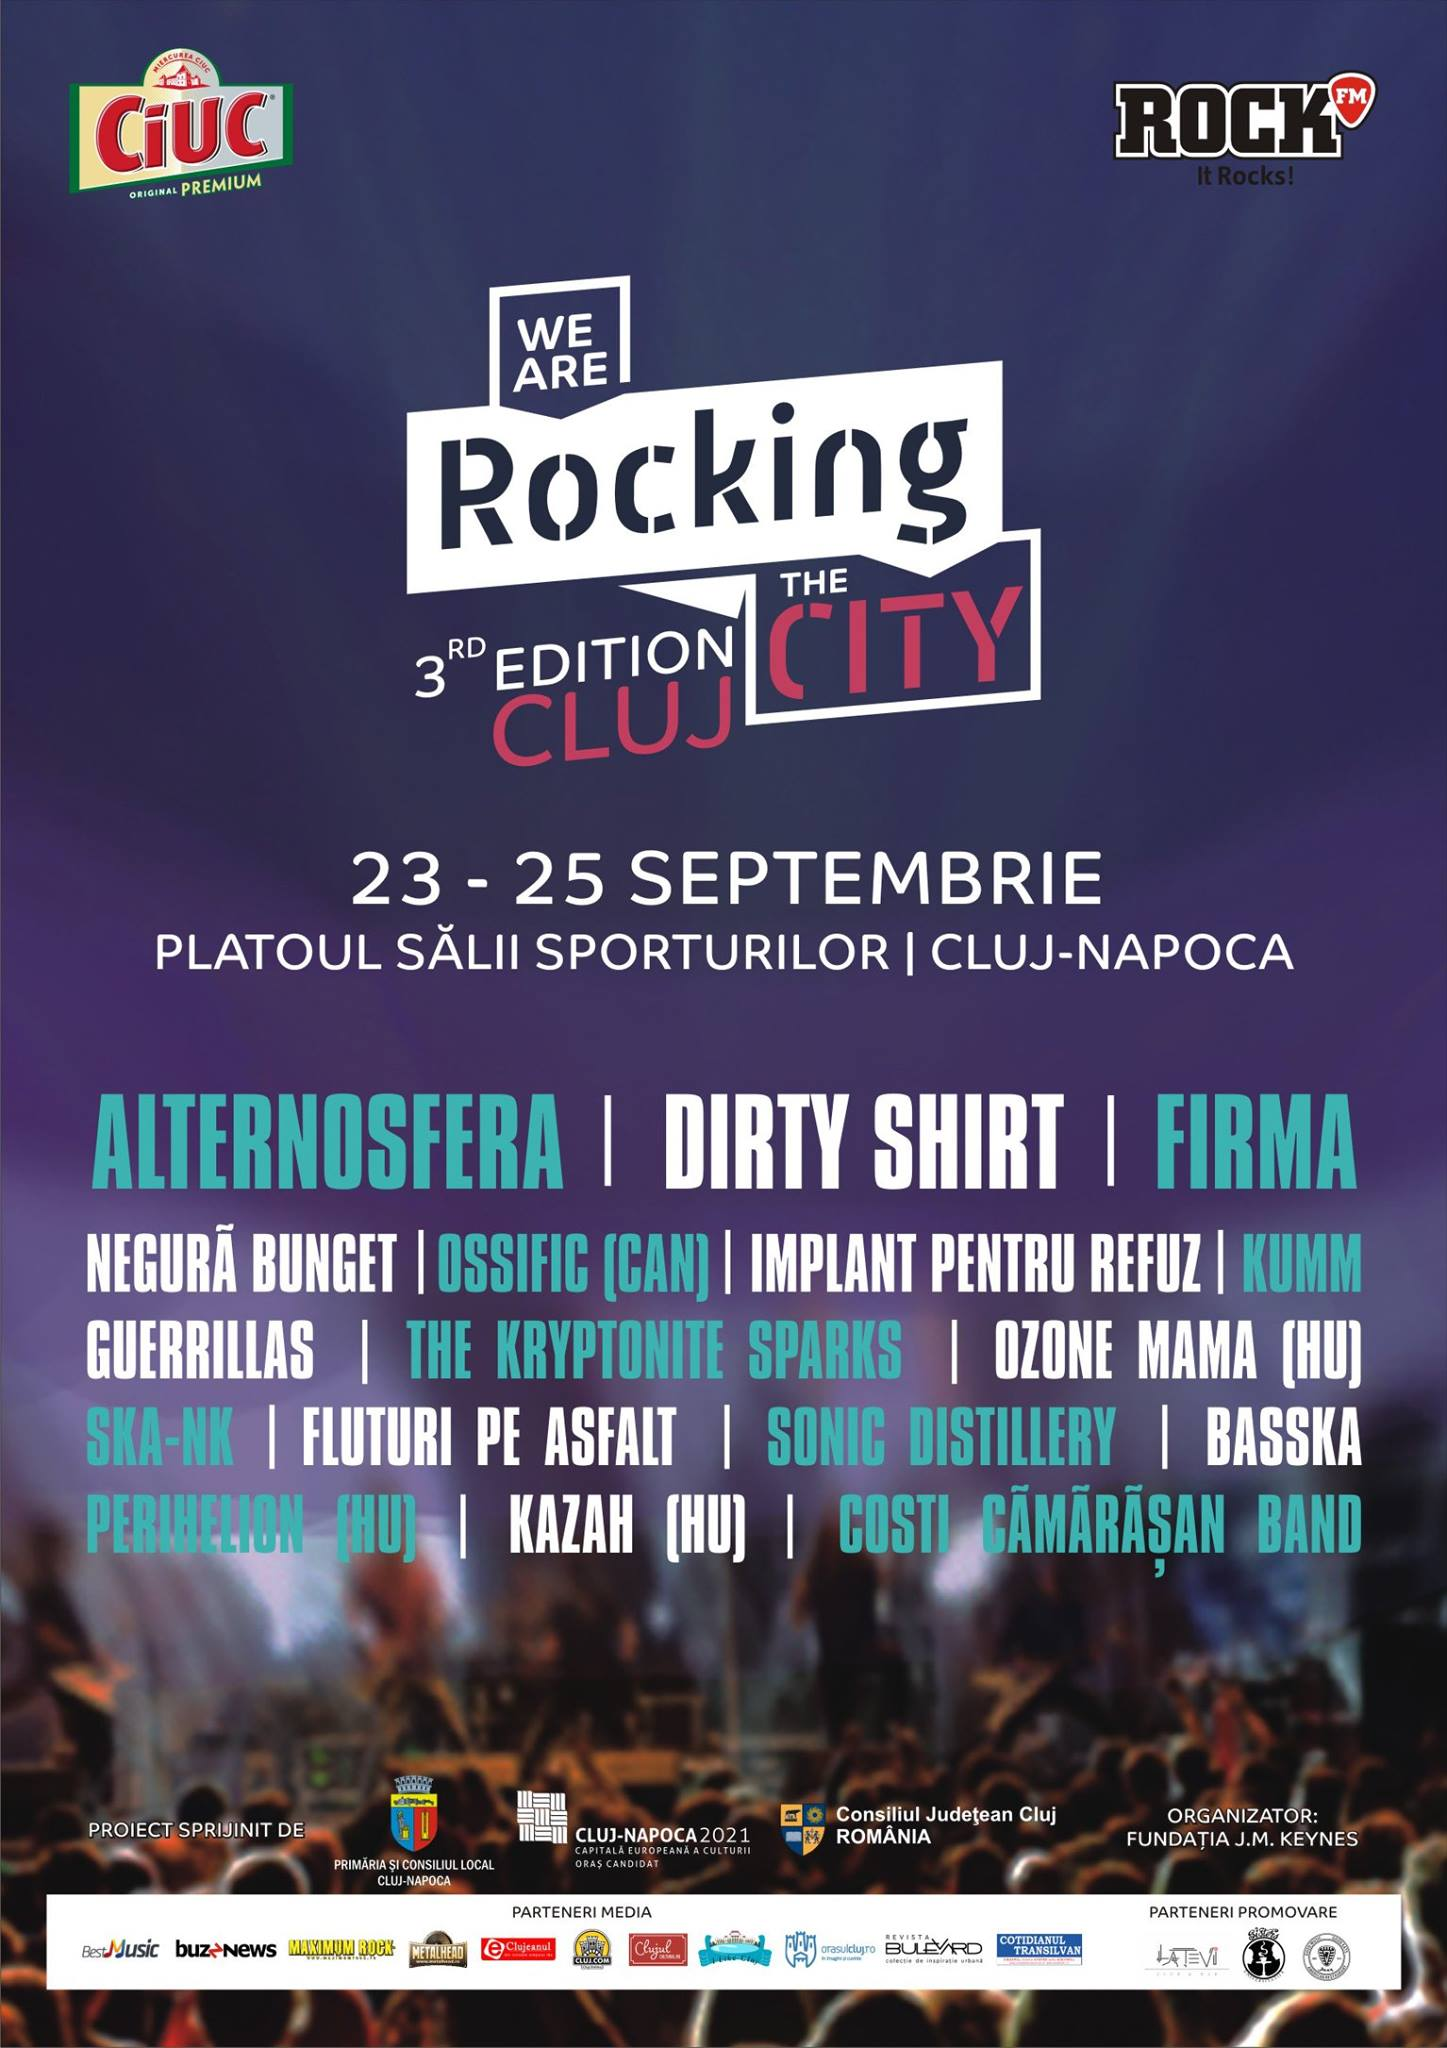 We are Rocking the City @ Platoul Sălii Sporturilor